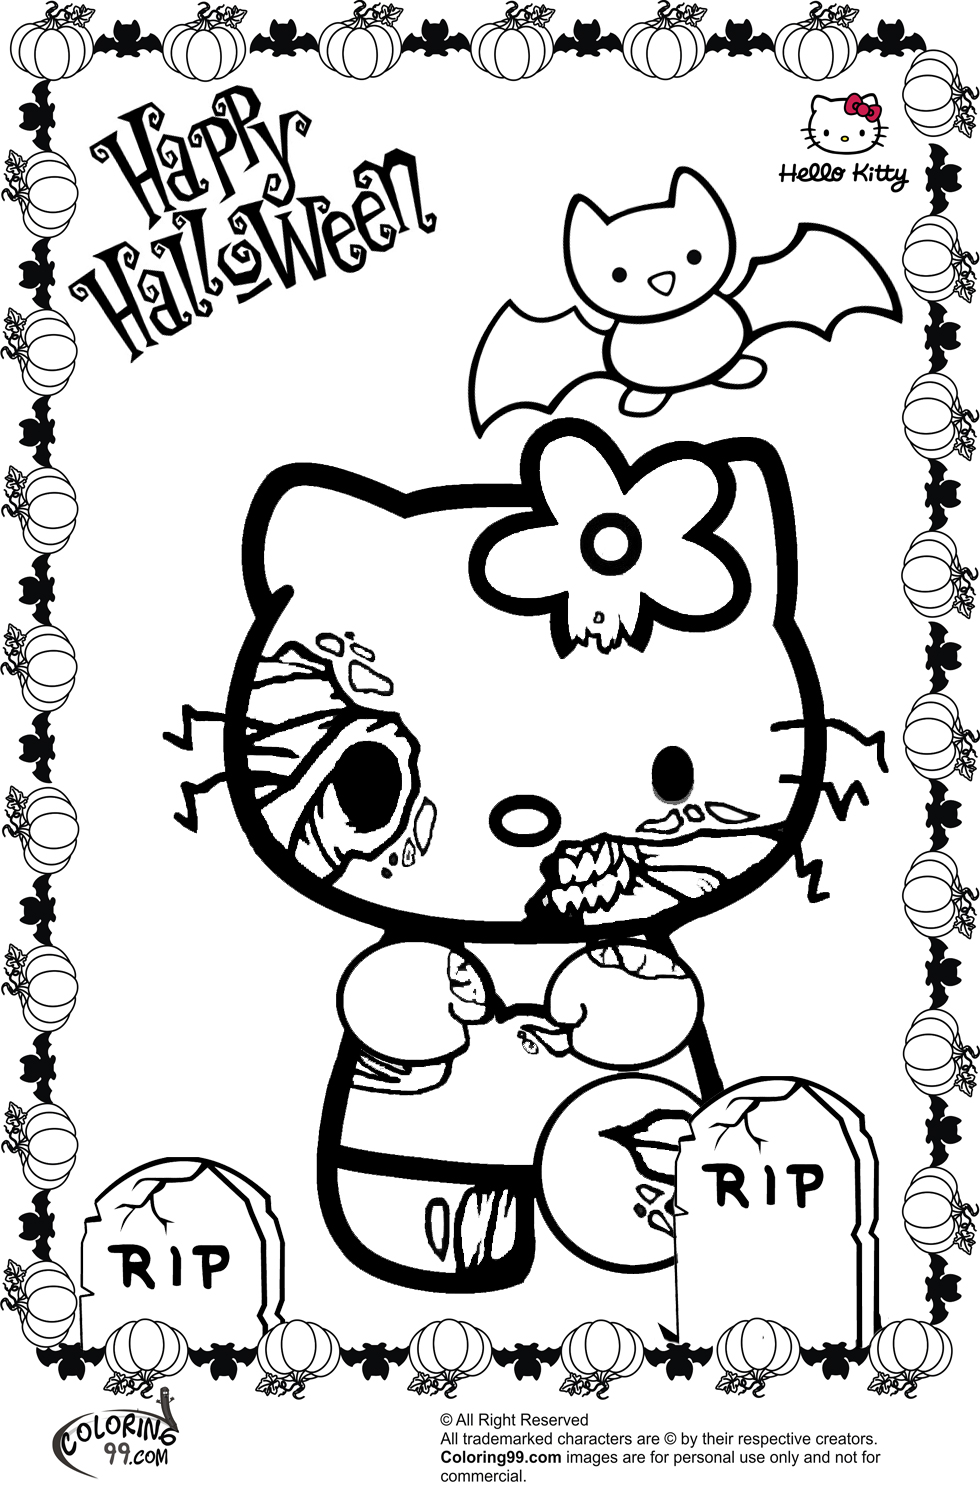 free printable halloween coloring pages for older kids free halloween coloring pages for adults kids pages halloween coloring for free kids printable older